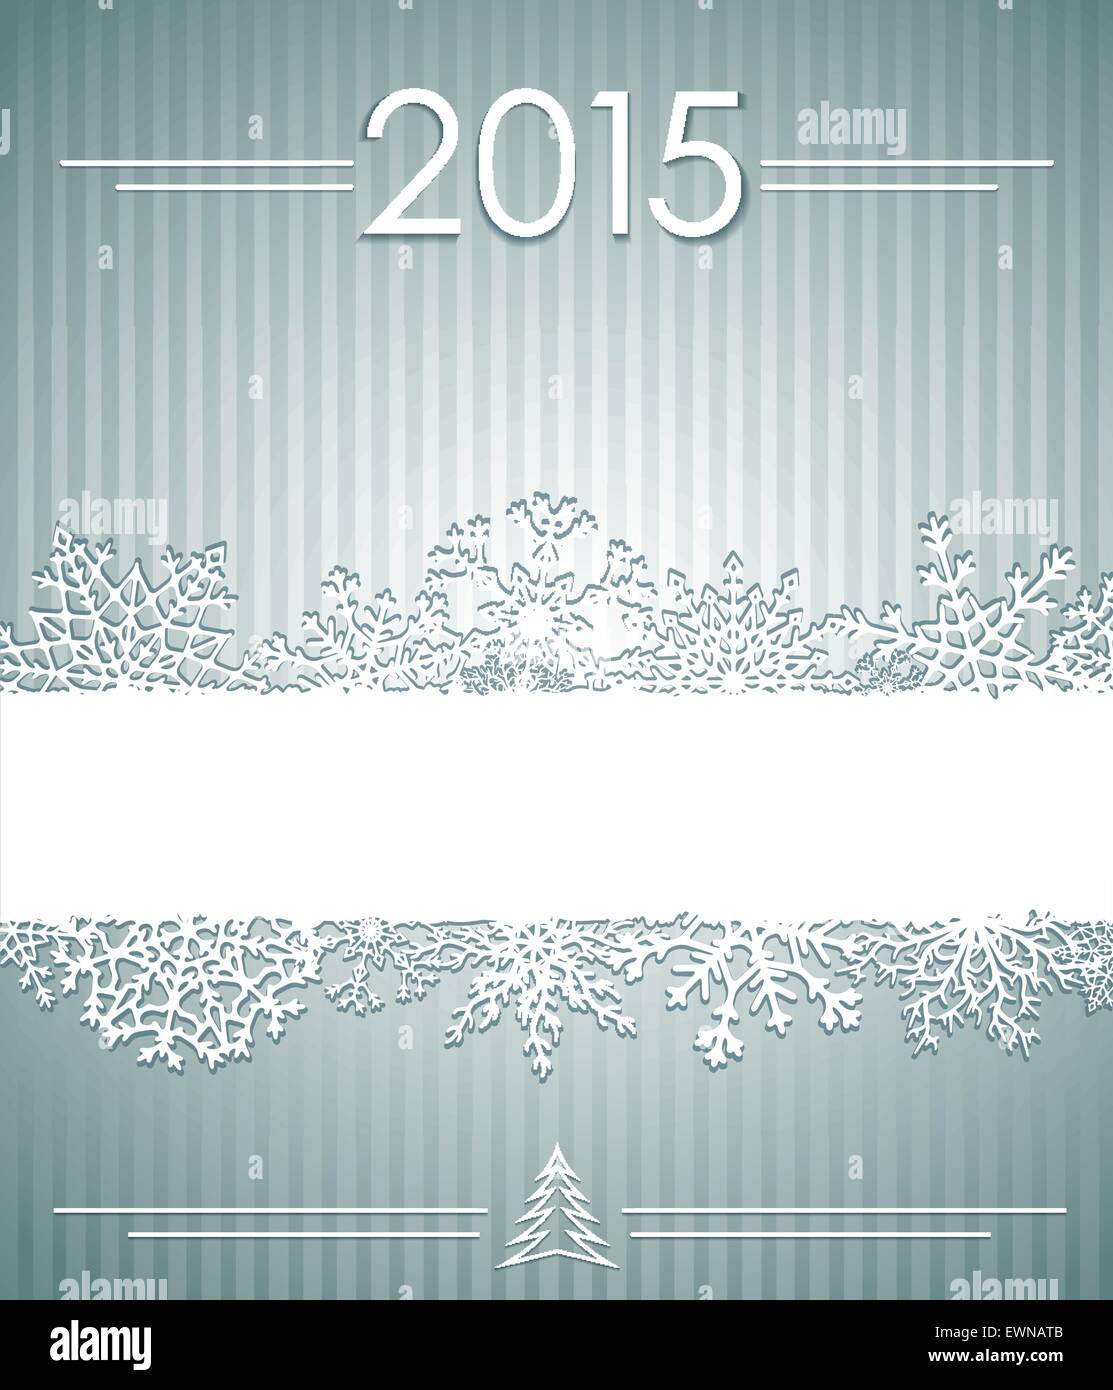 Christmas background with snowflakes. Vector eps10. - Stock Image